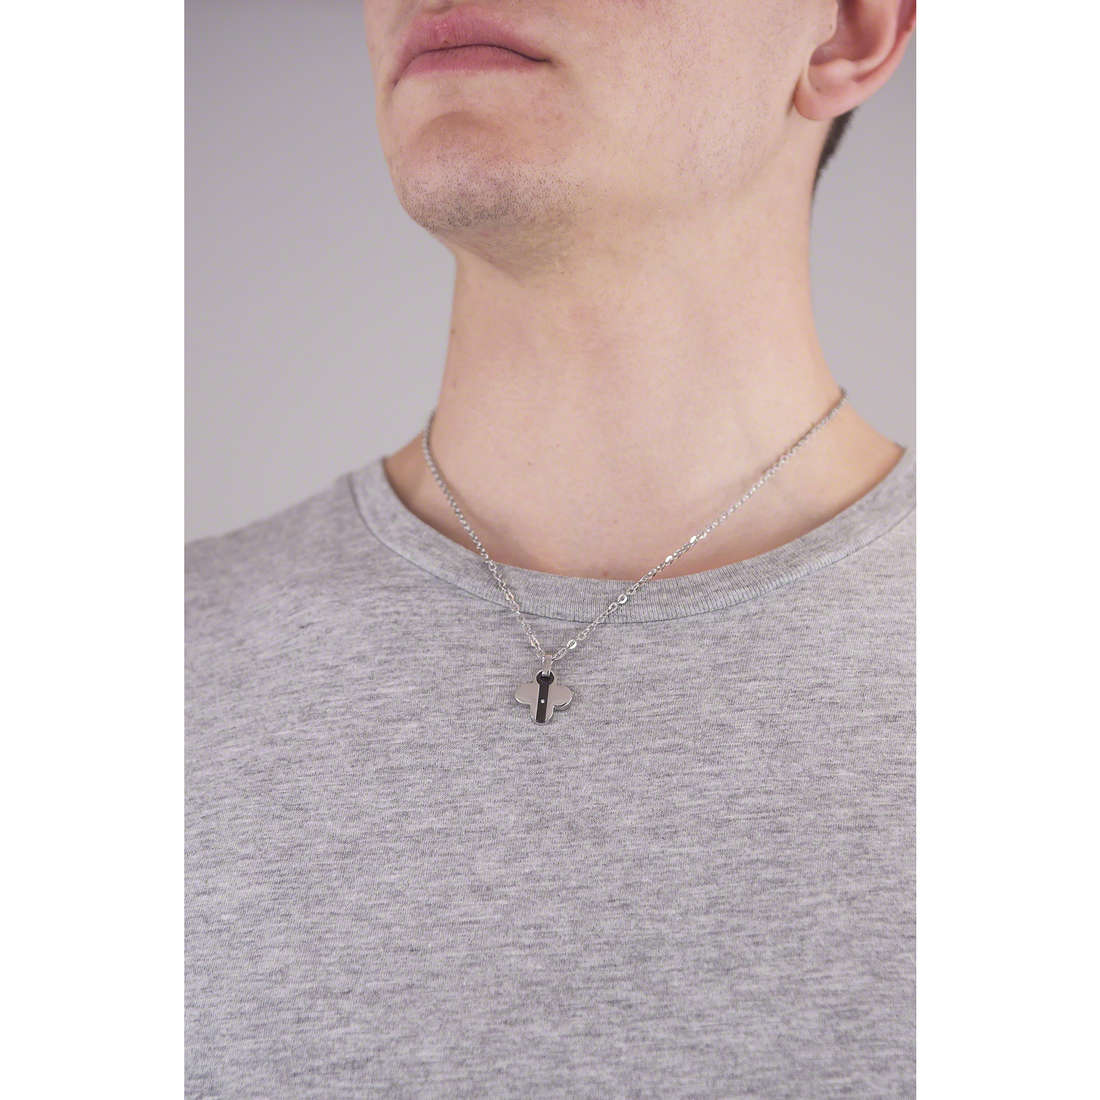 Comete necklaces Basic man UGL 339 indosso